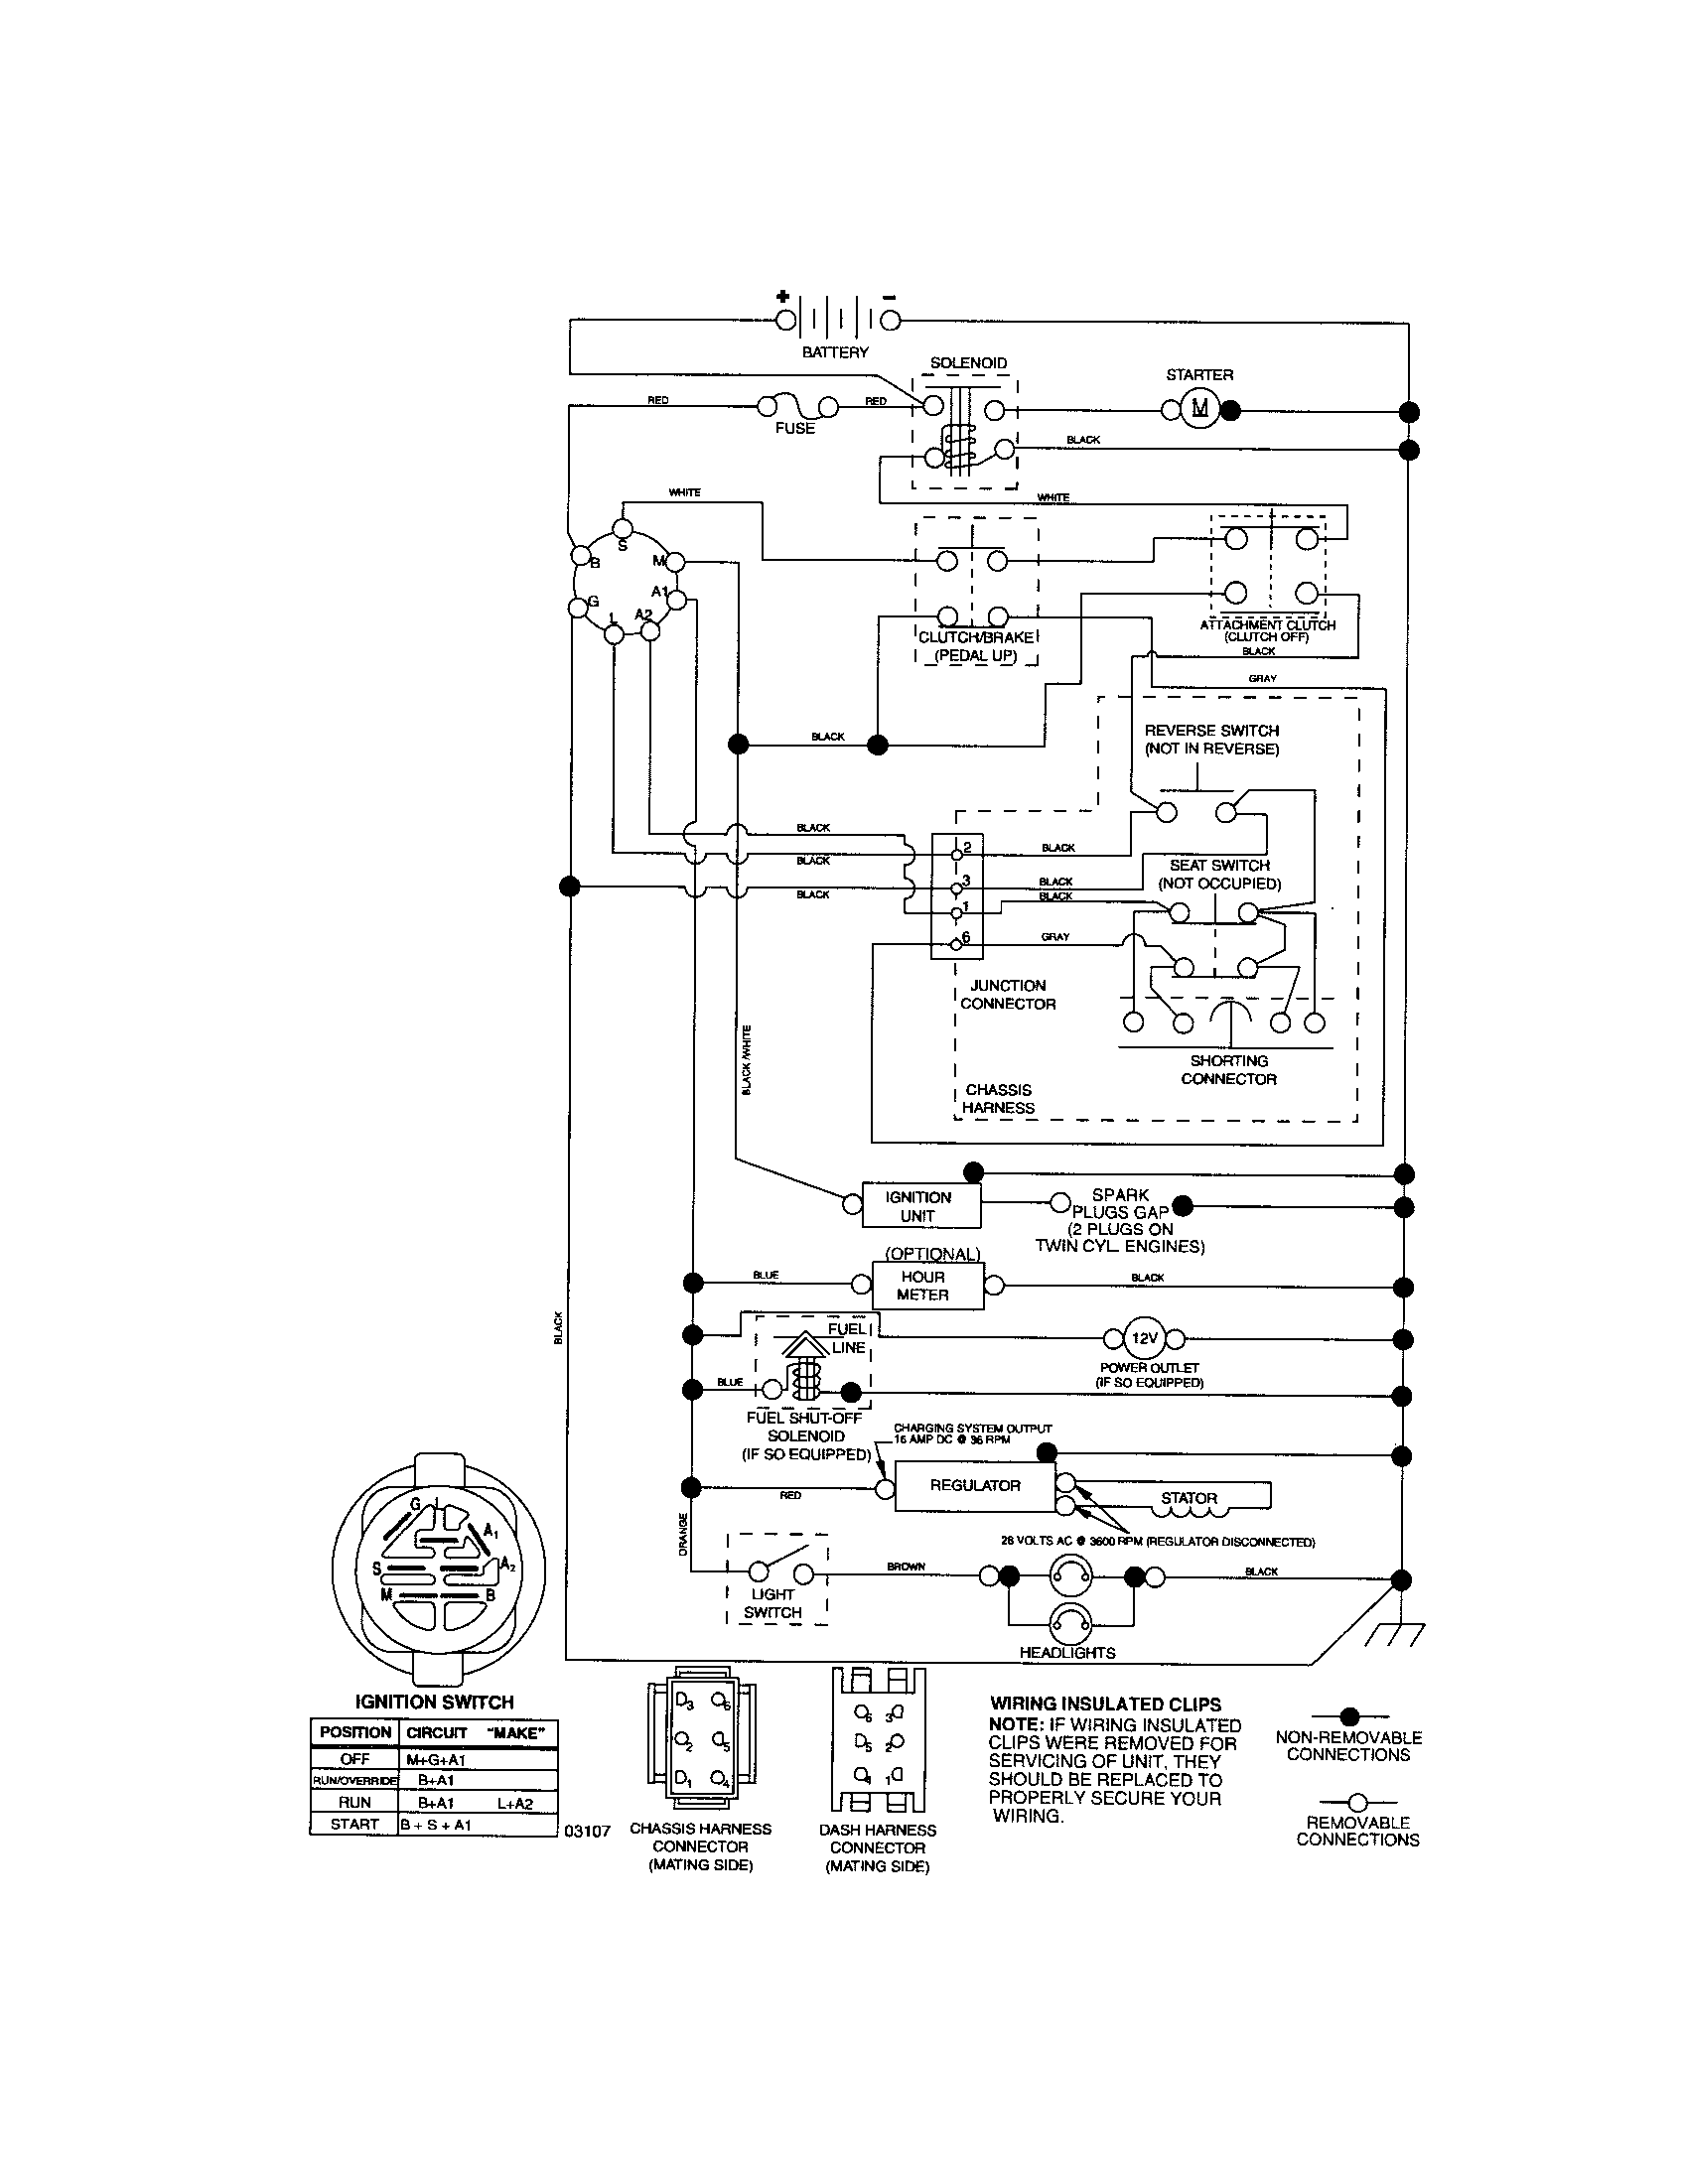 Simplicity Snow Blower Wiring Diagram also John Deere 316 Onan Starter Location likewise Parker Electrical Wiring Diagrams besides Service Body Crane Wiring Diagram likewise Wiring Diagram For John Deere 5105 Tractor. on john deere lawn tractor snow plow